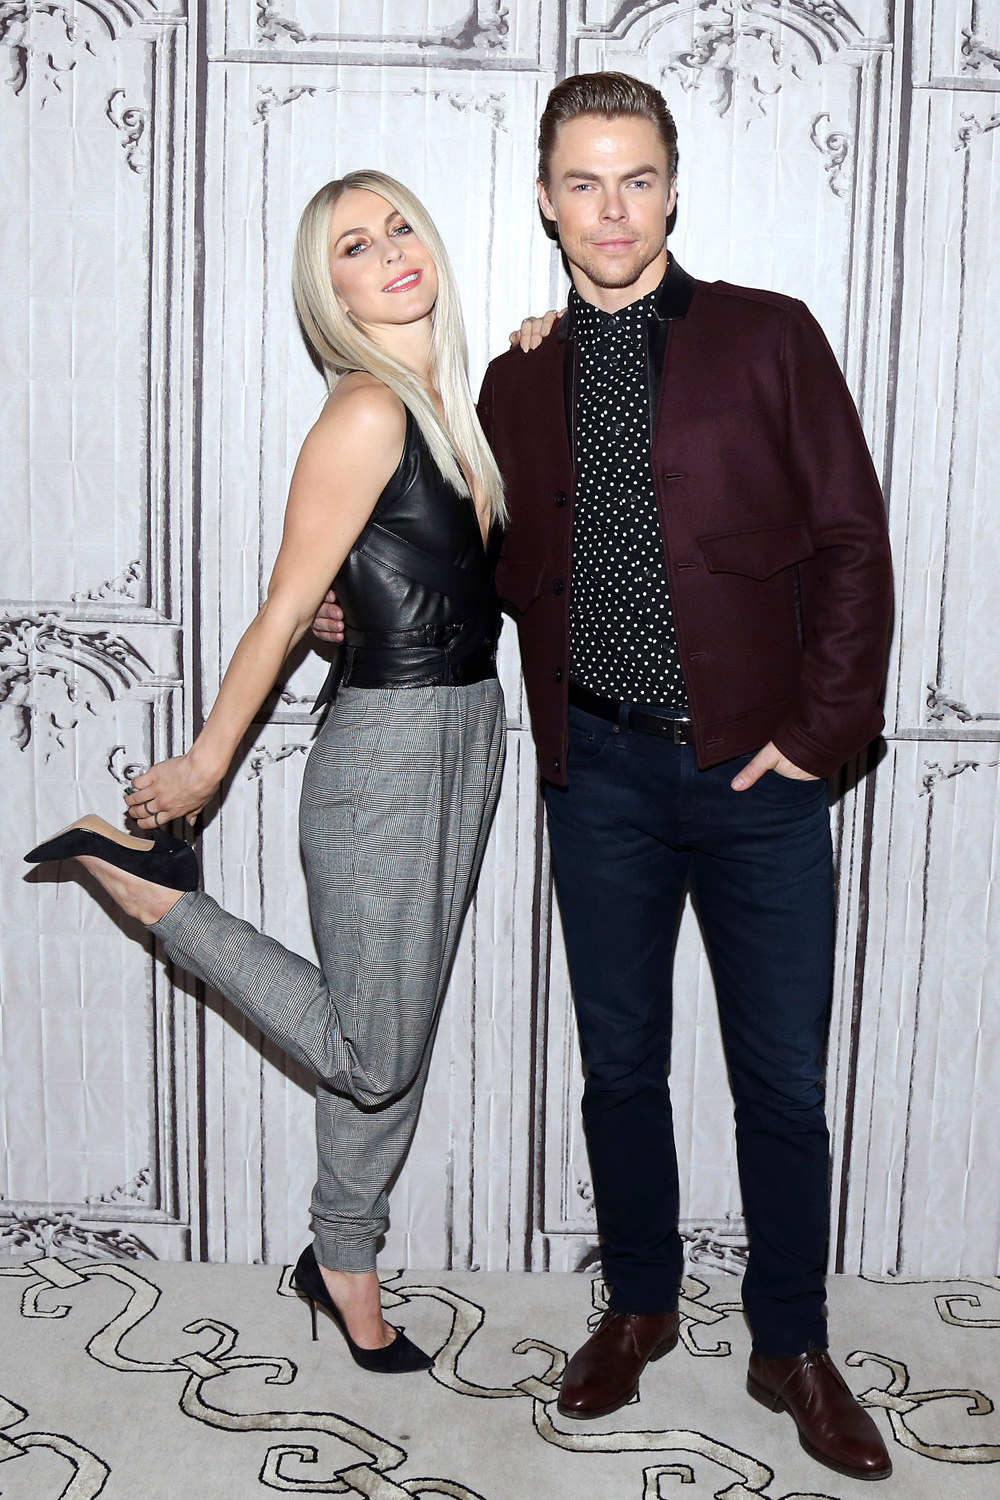 julianne-hough-derek-hough-build-series-event-red-carpet-fashion-tom-lorenzo-site-1